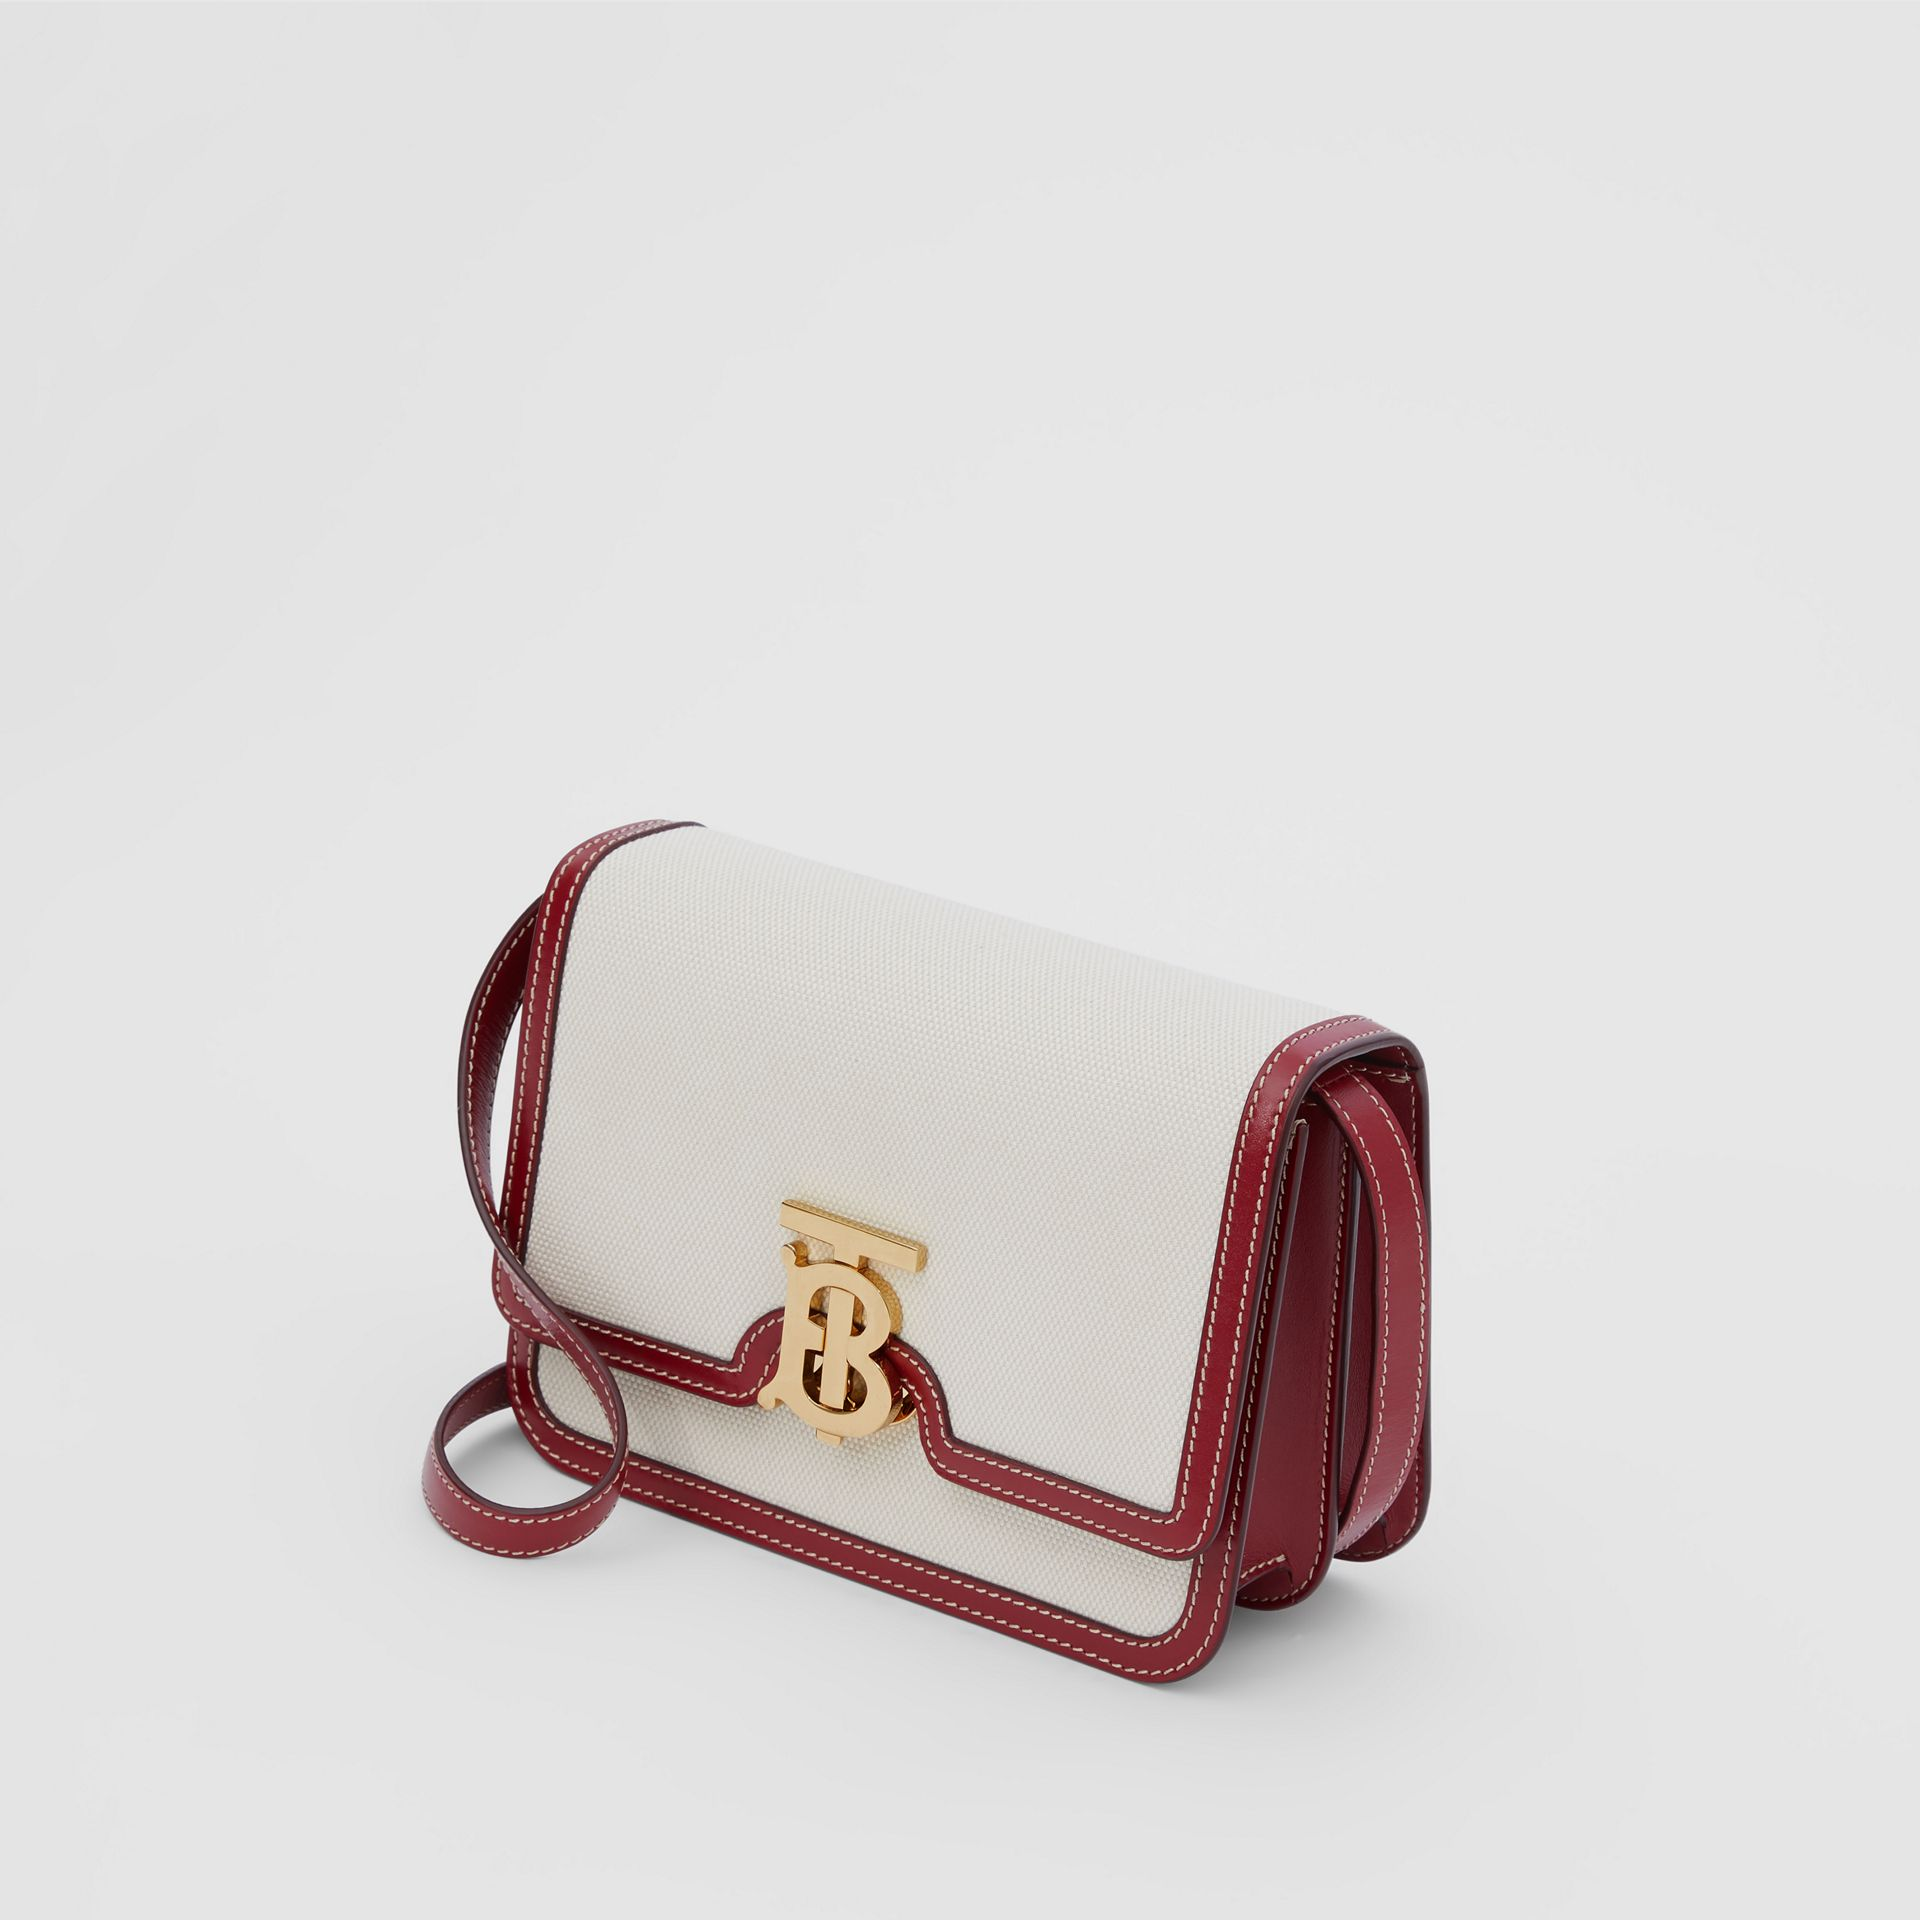 Small Two-tone Canvas and Leather TB Bag in Natural/dark Carmine - Women | Burberry Australia - gallery image 2